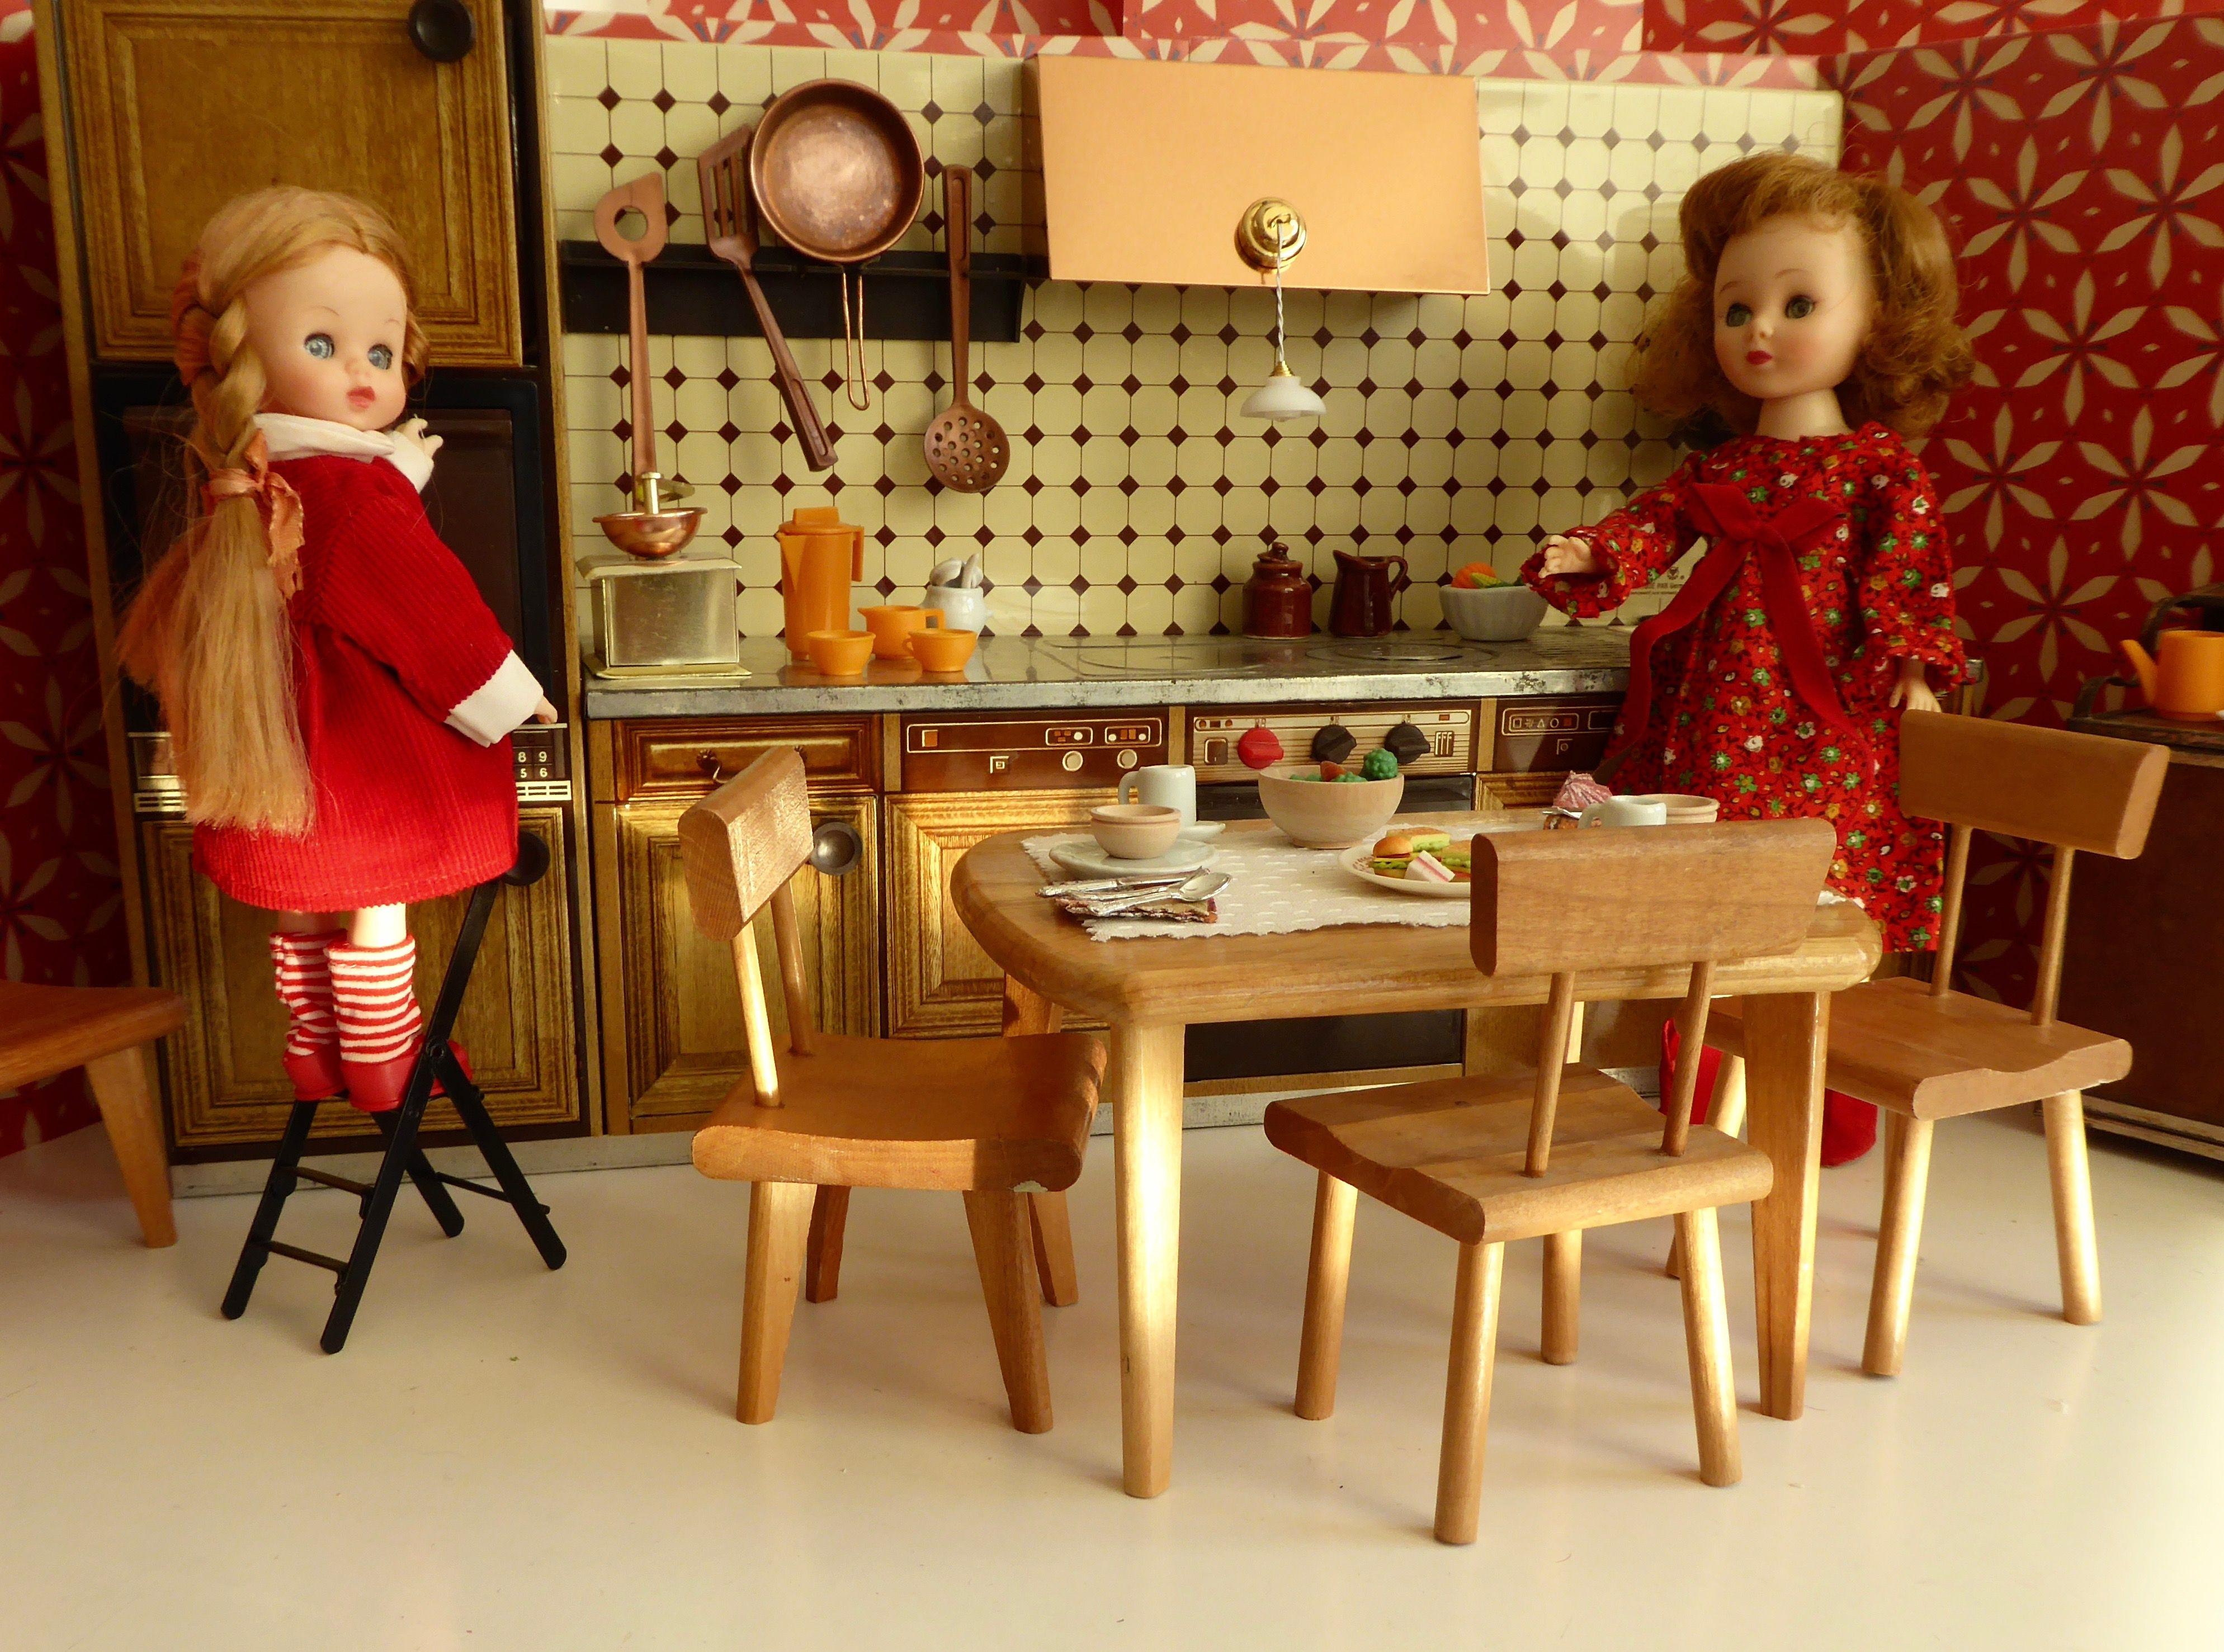 S metal mfz doll kitchen and strombecker furniture ideal for